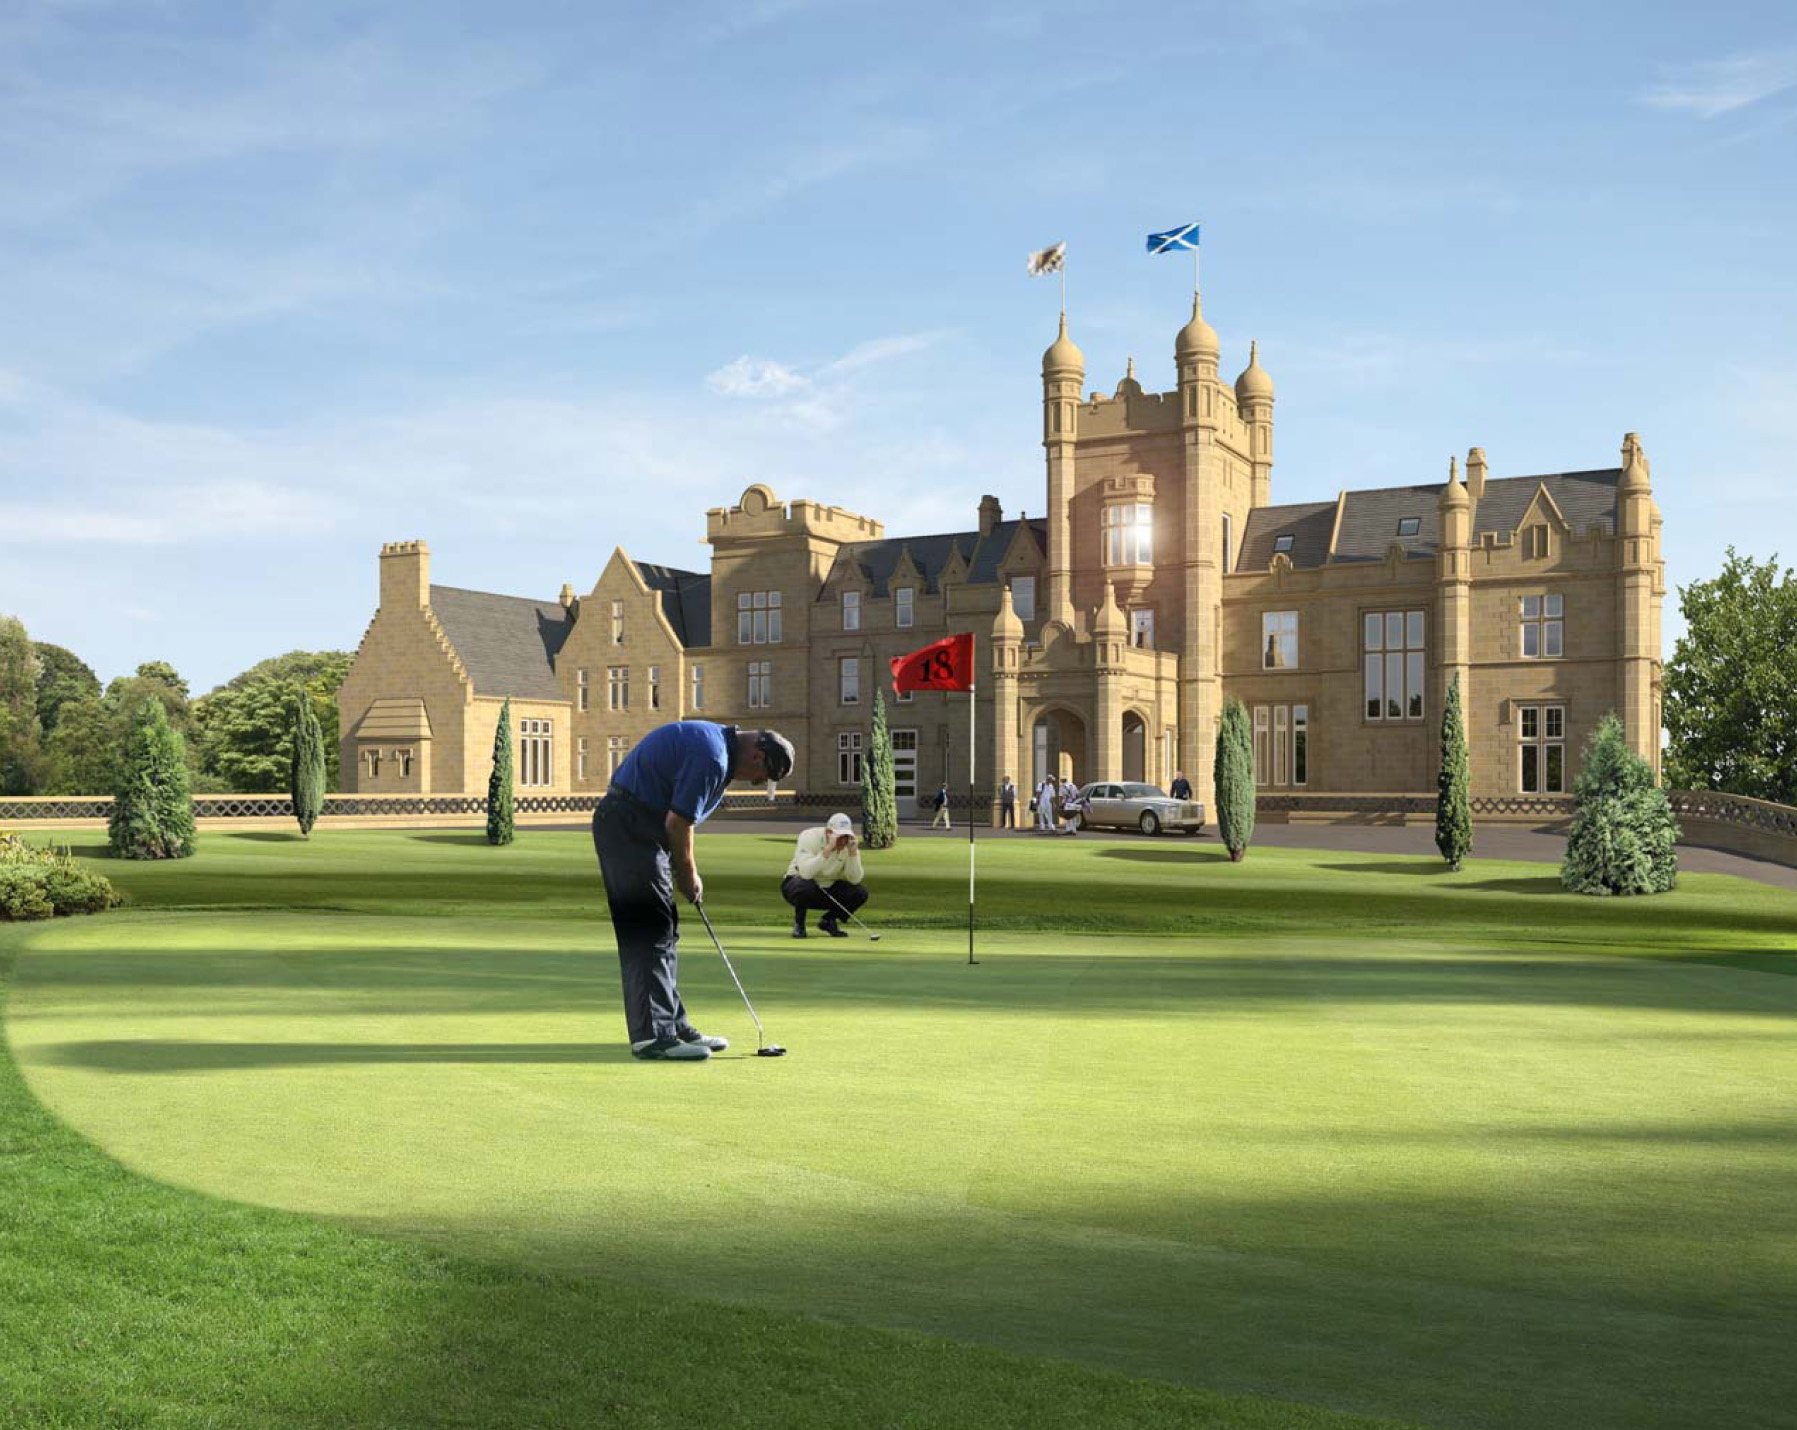 An artist's impression of the planned golf course.